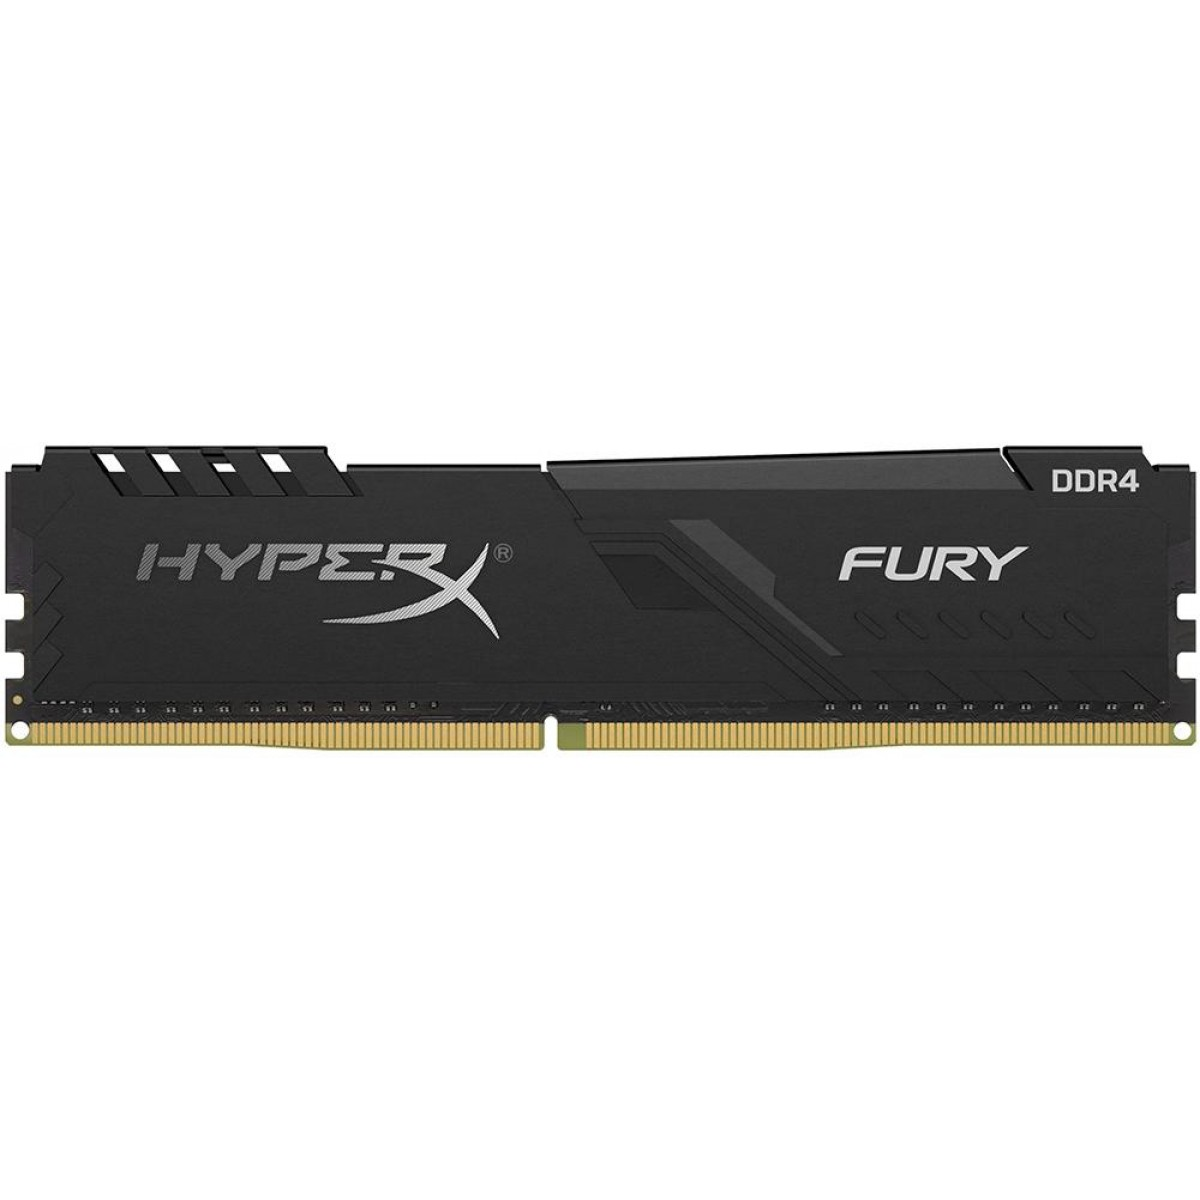 Memória DDR4 Kingston HyperX Fury, 4GB 2666MHz, Black, HX426C16FB3/4